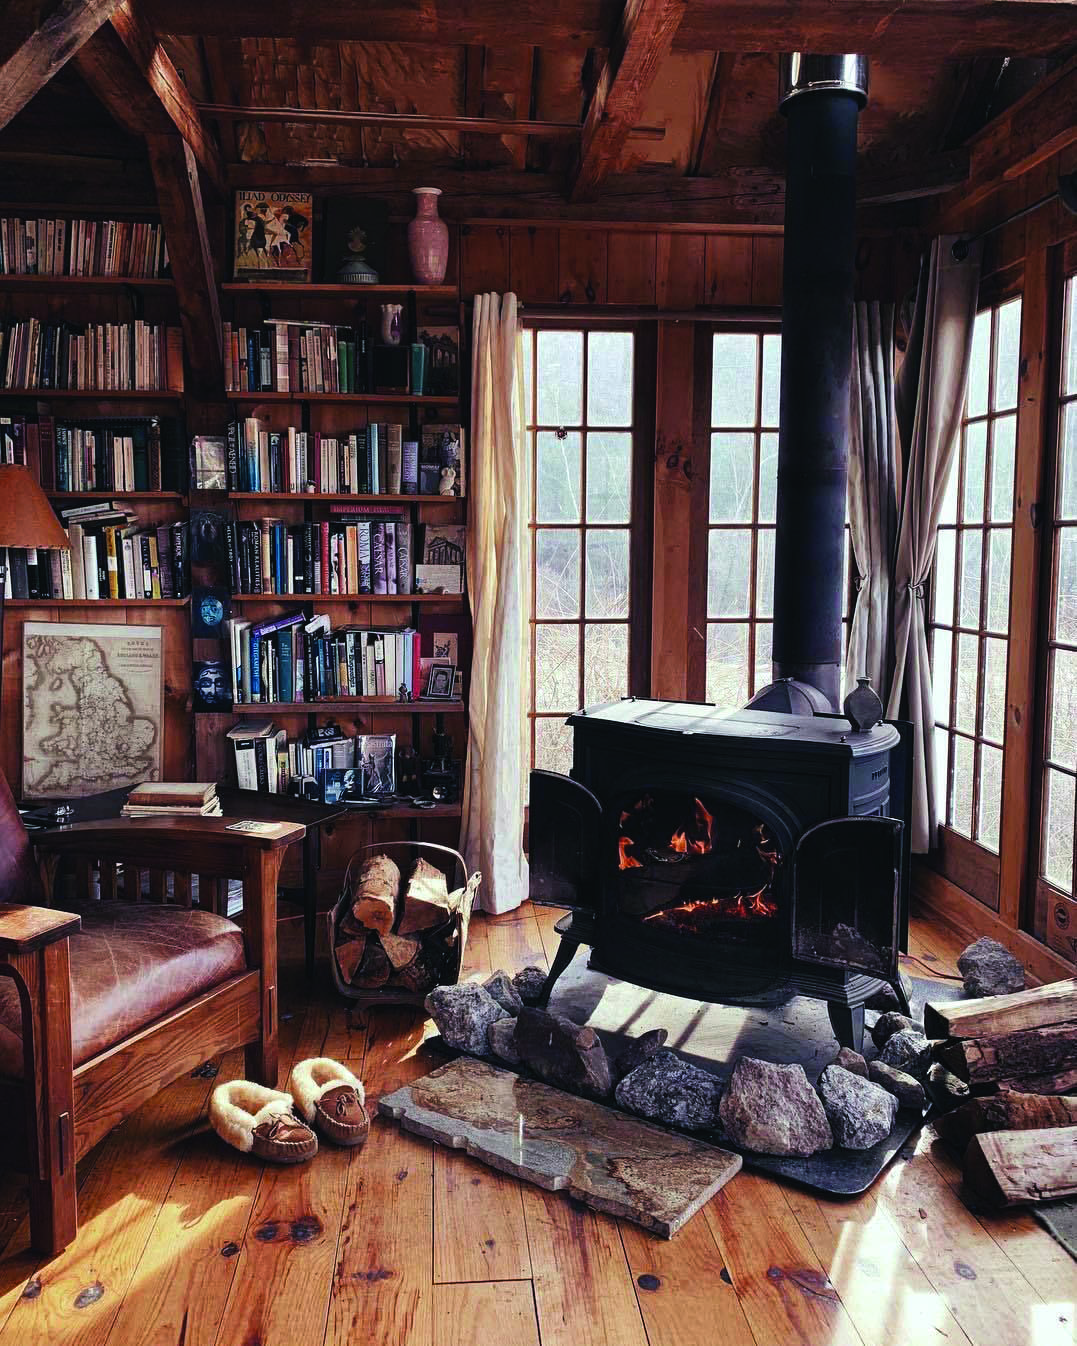 Desire A Residence Library Here Are 4 Tips To Assist Make Your